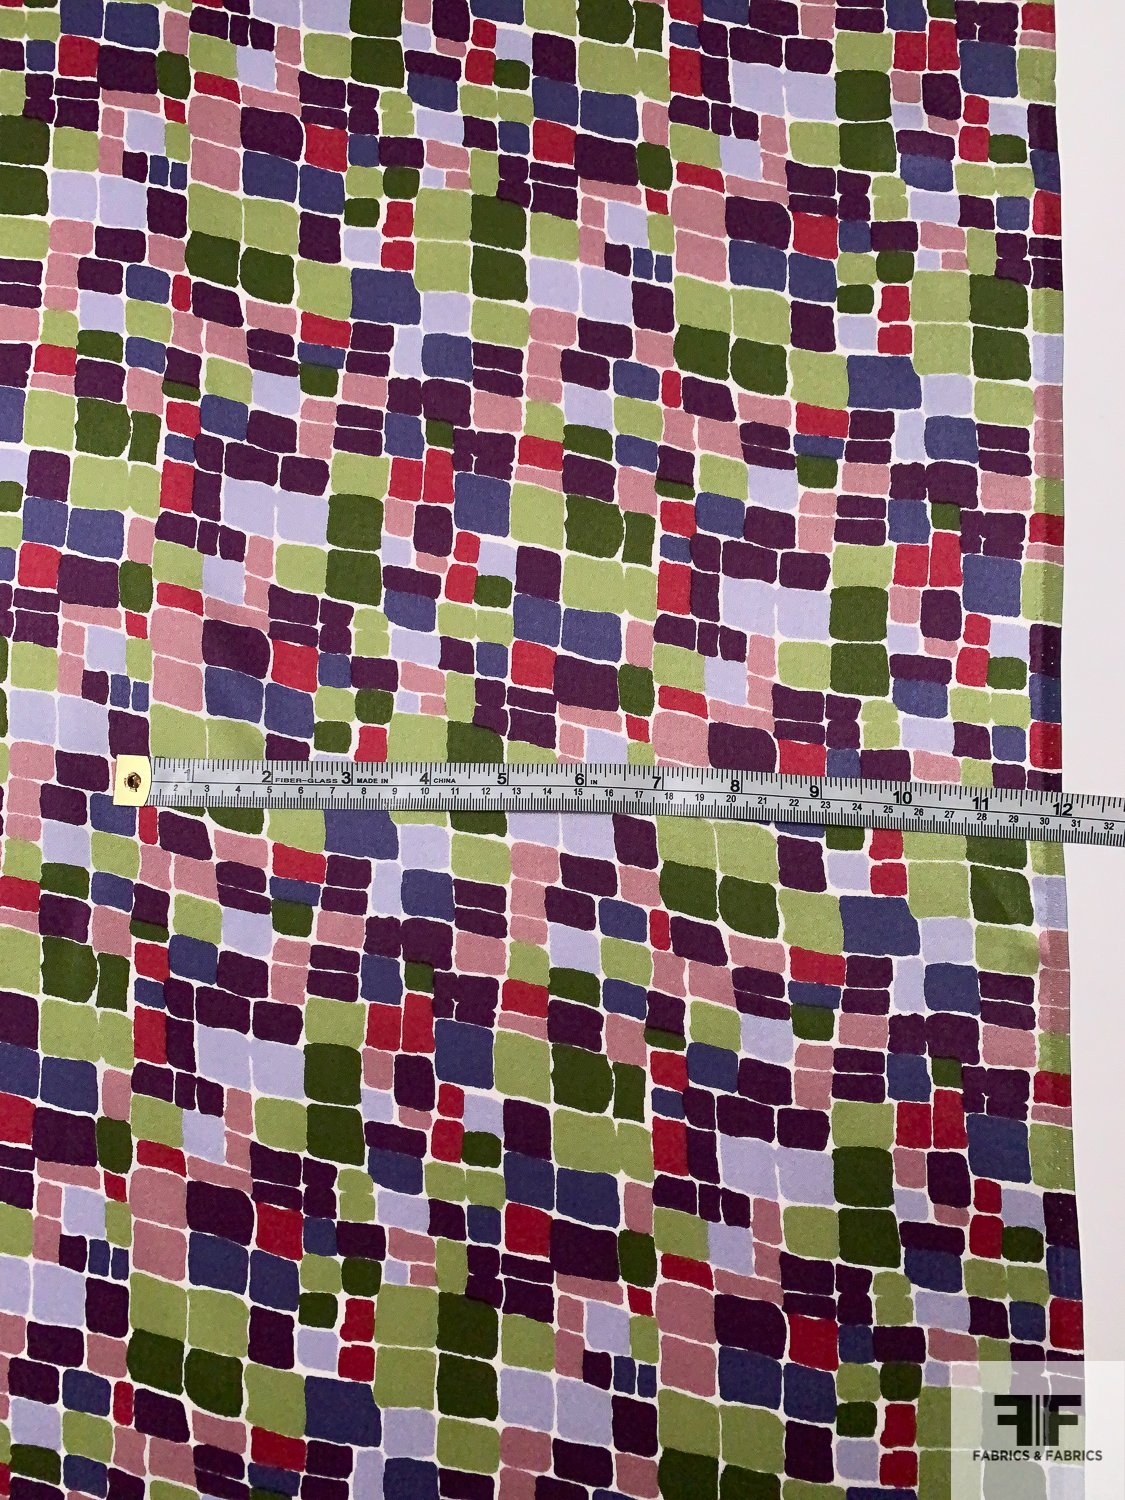 Painted Pixel Squares Printed Silk Charmeuse - Eggplant / Army Green / Mauve / Multi